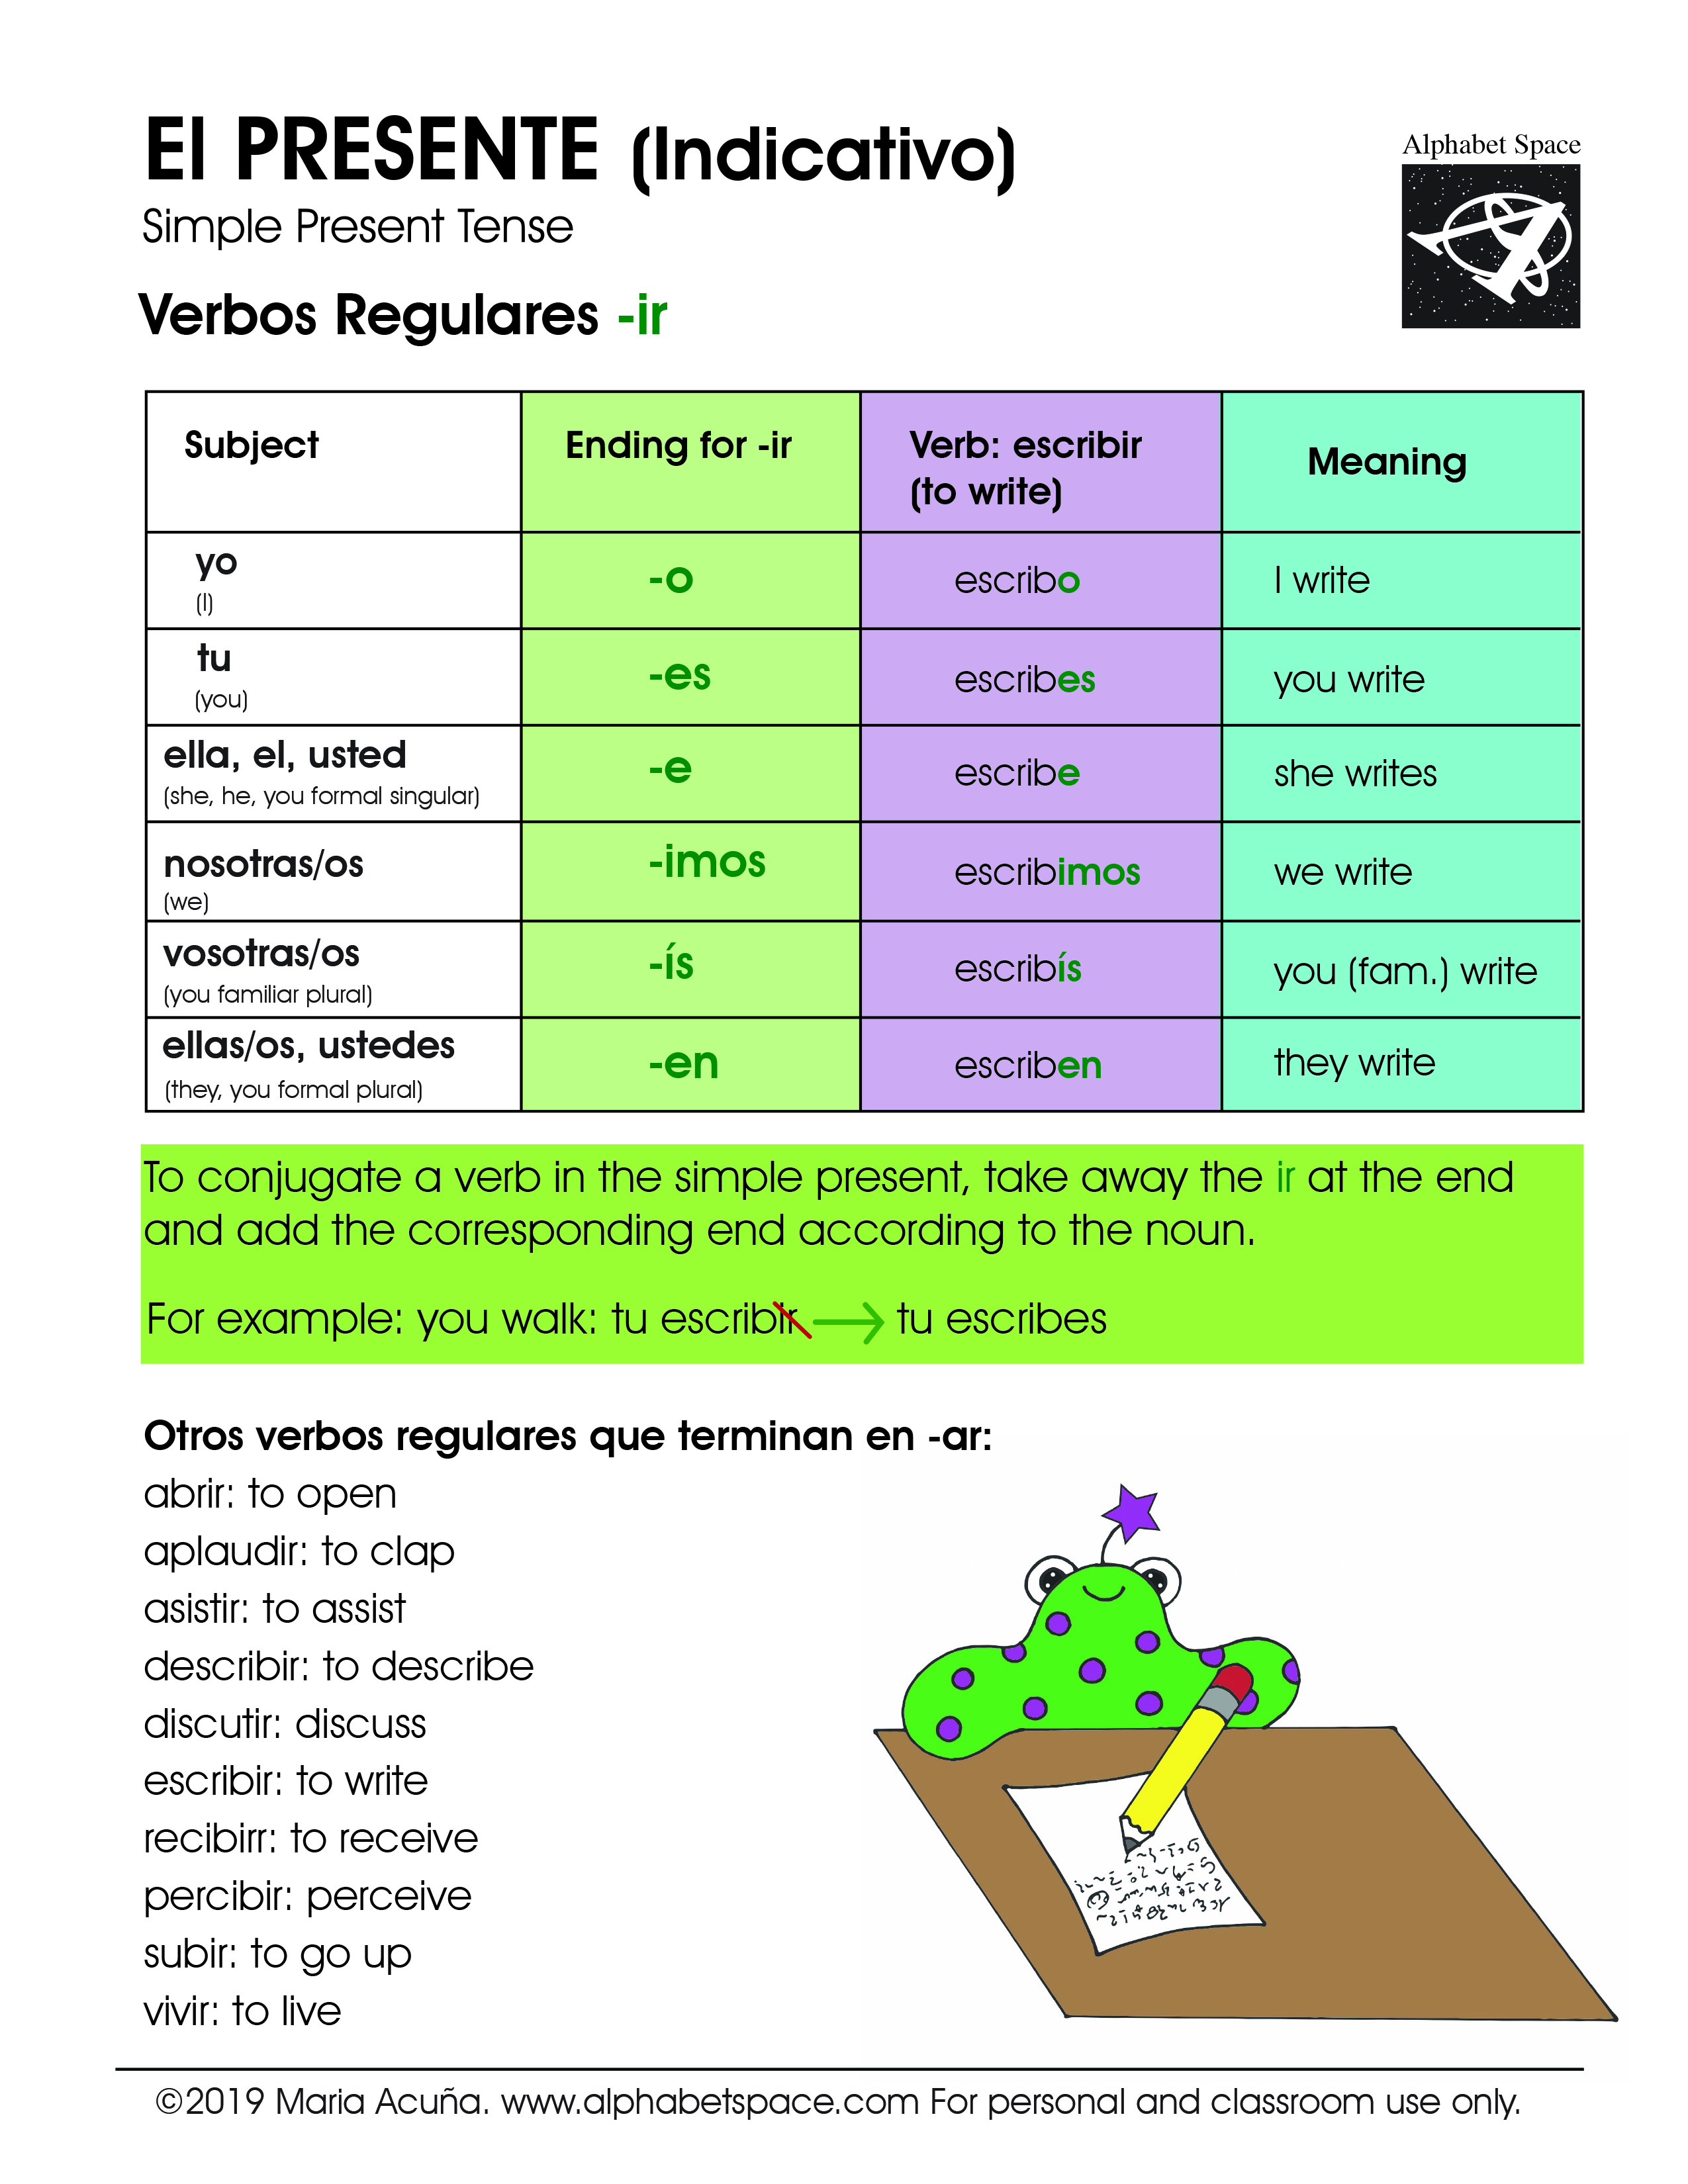 Present -ir reg Graphic. ©2019 Maria Acuña. For personal or classroom use only..jpg